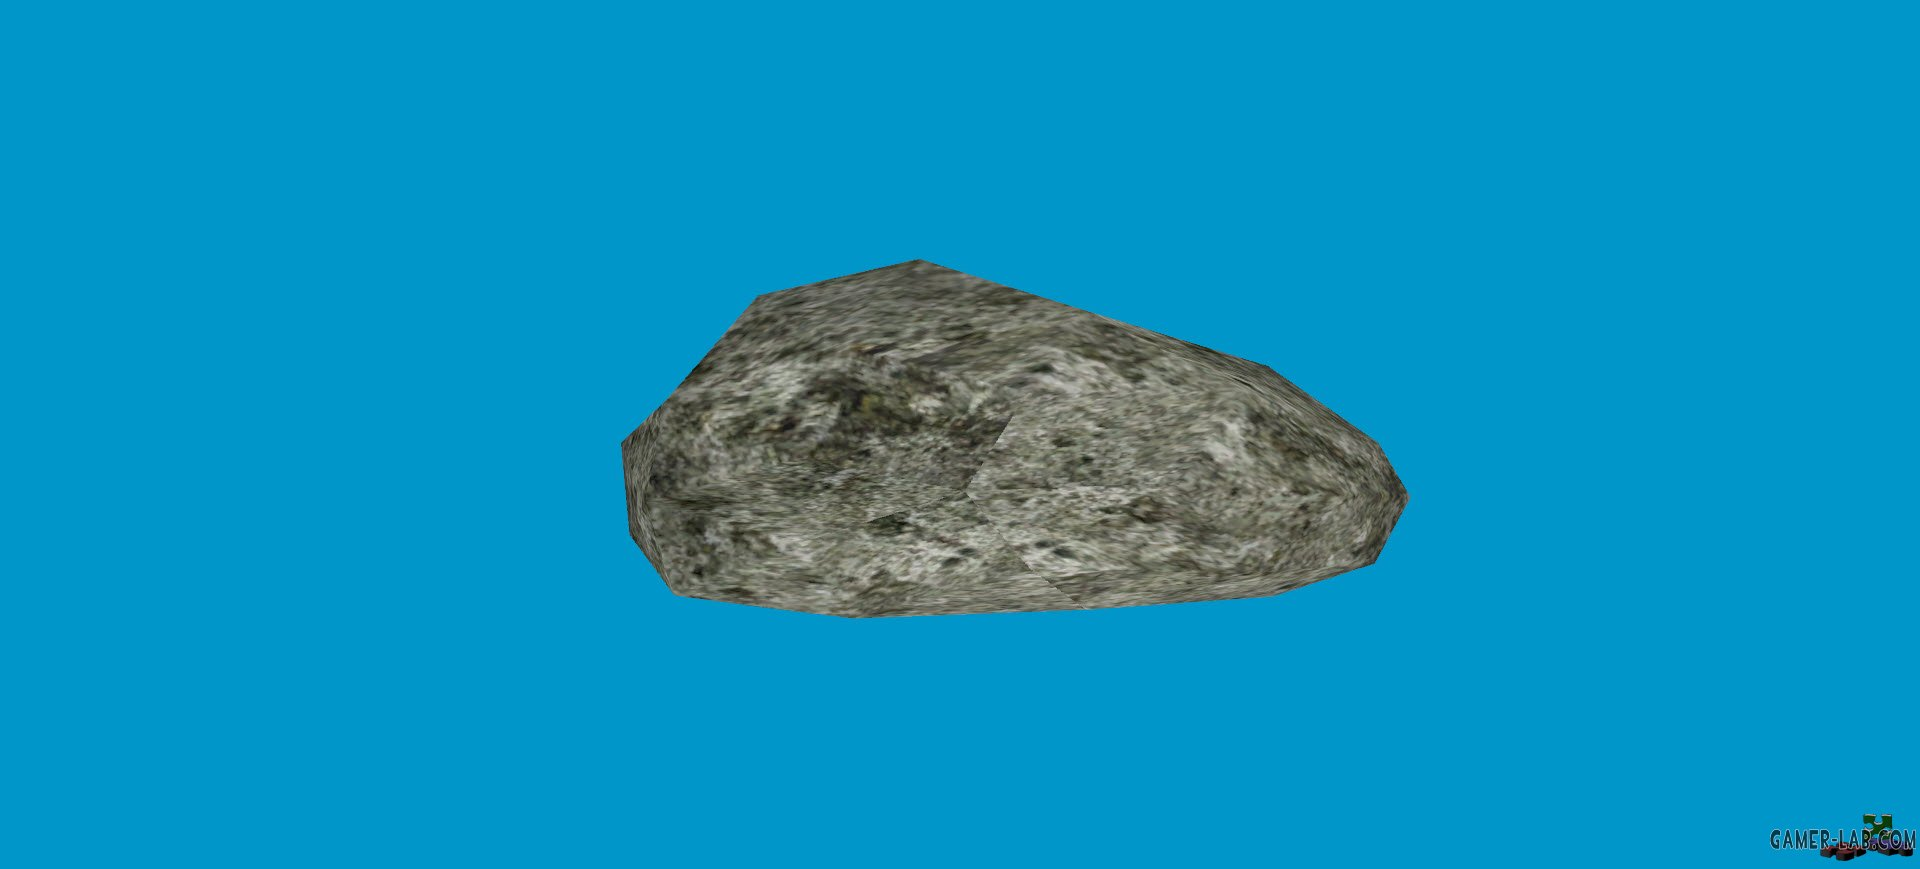 jn_rock_02_pebble